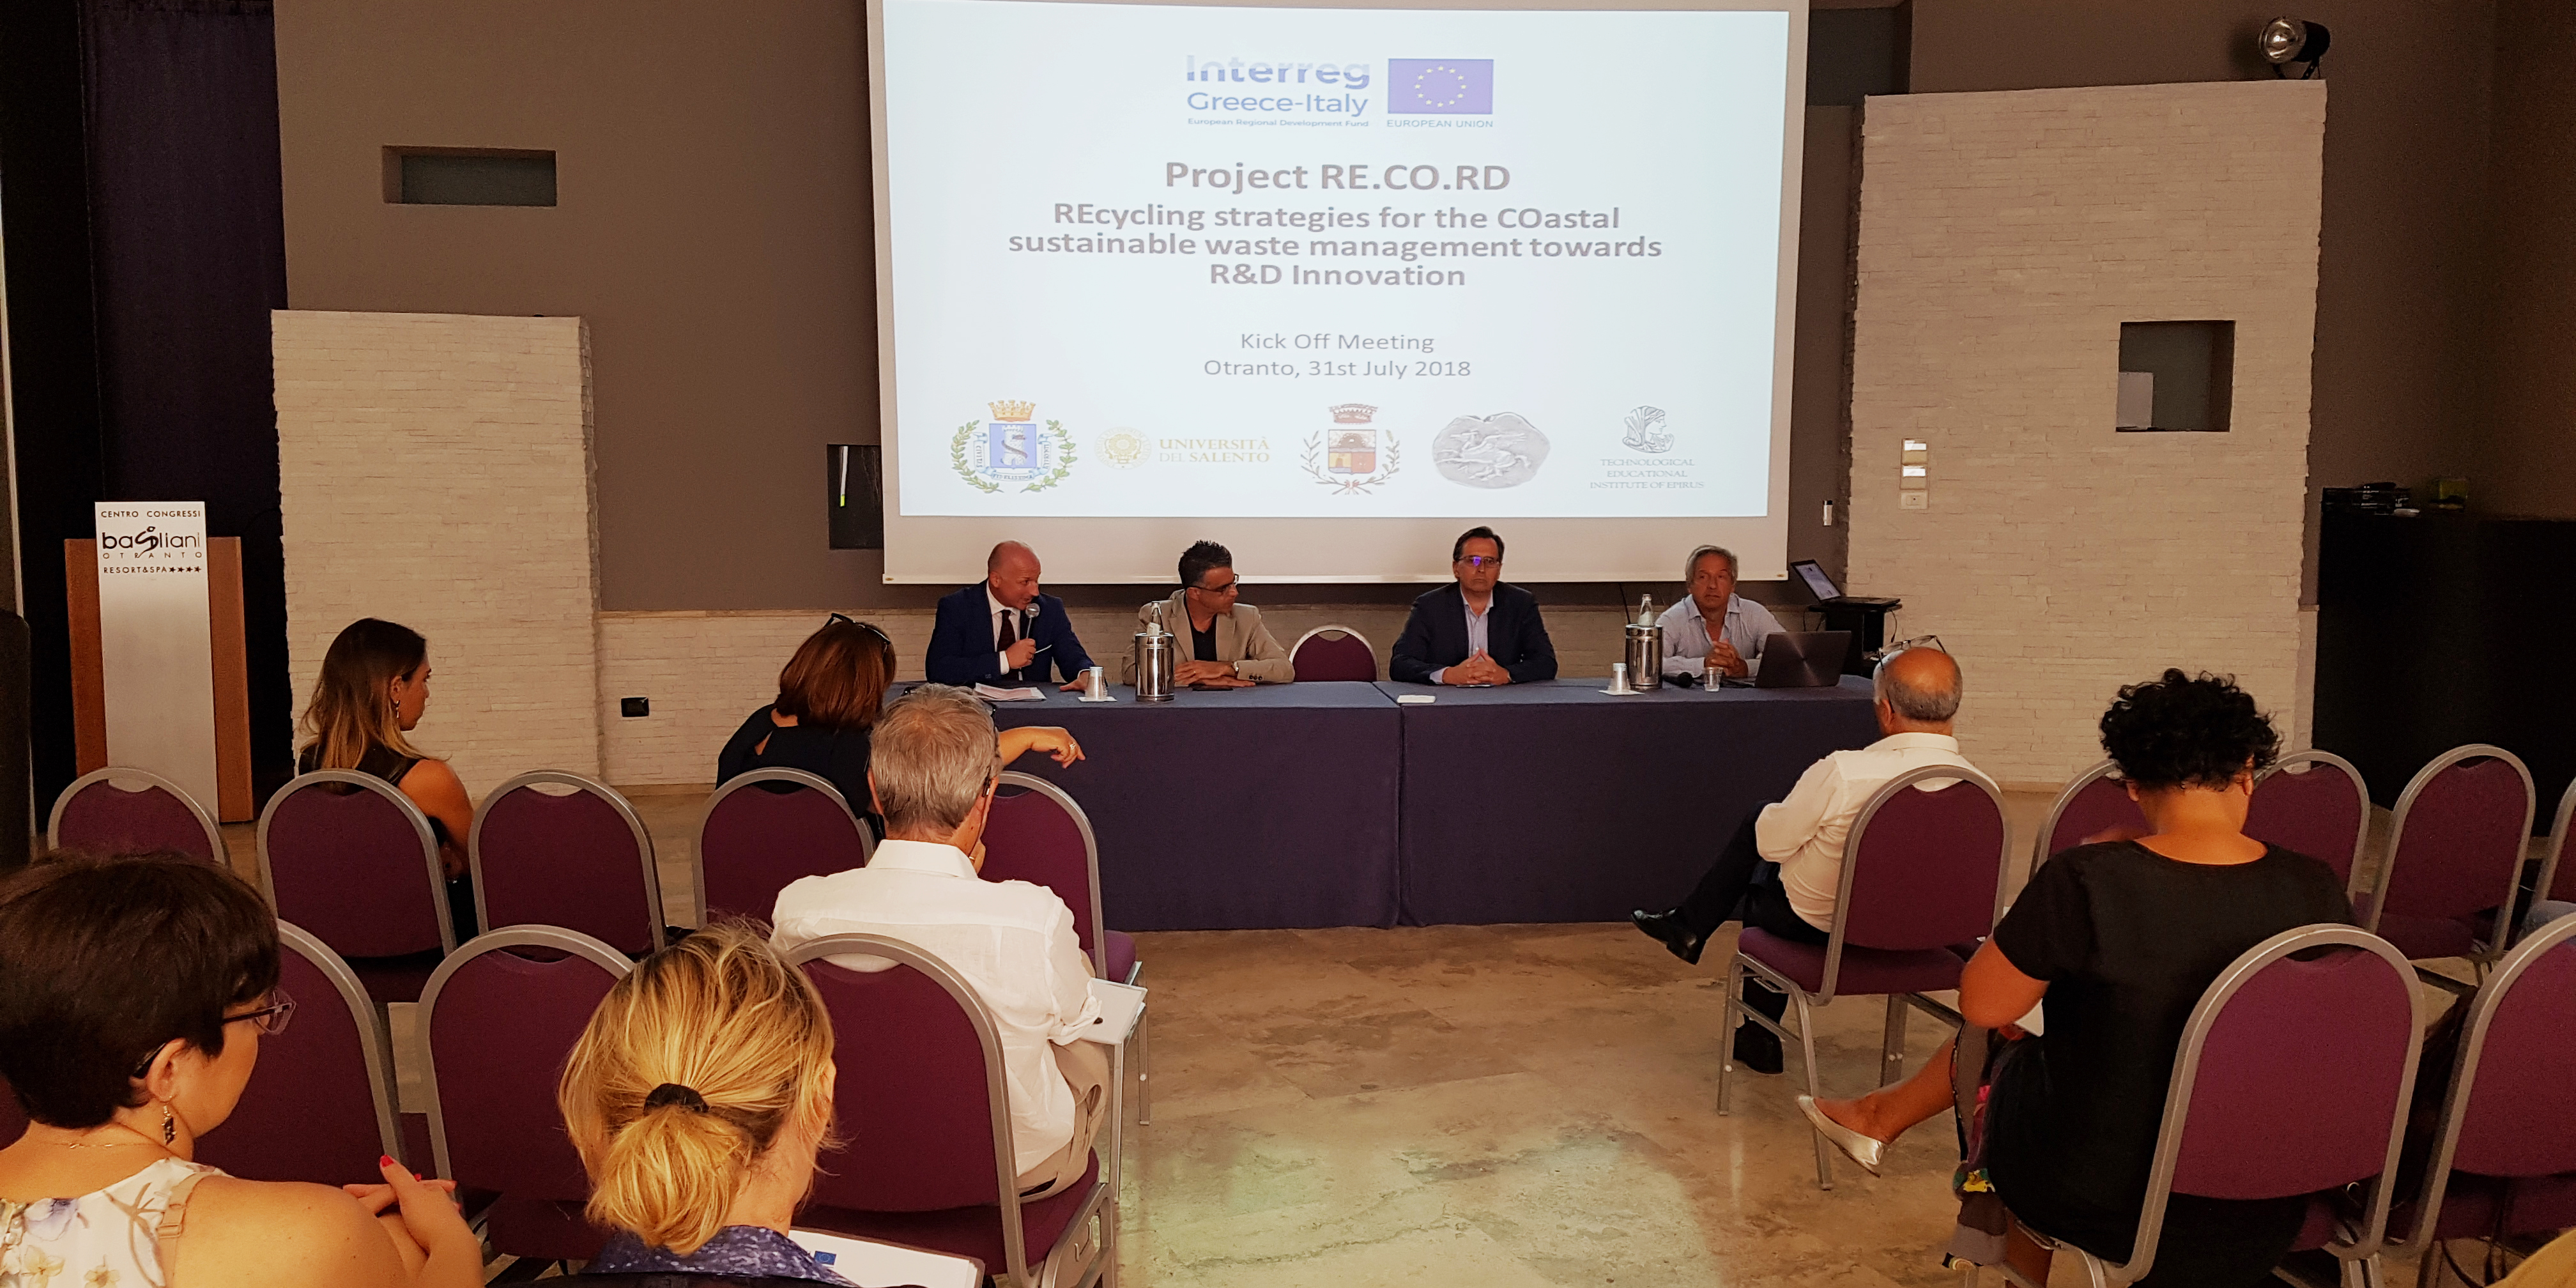 Kick-off meeting of Record project: new recycling solutions for the